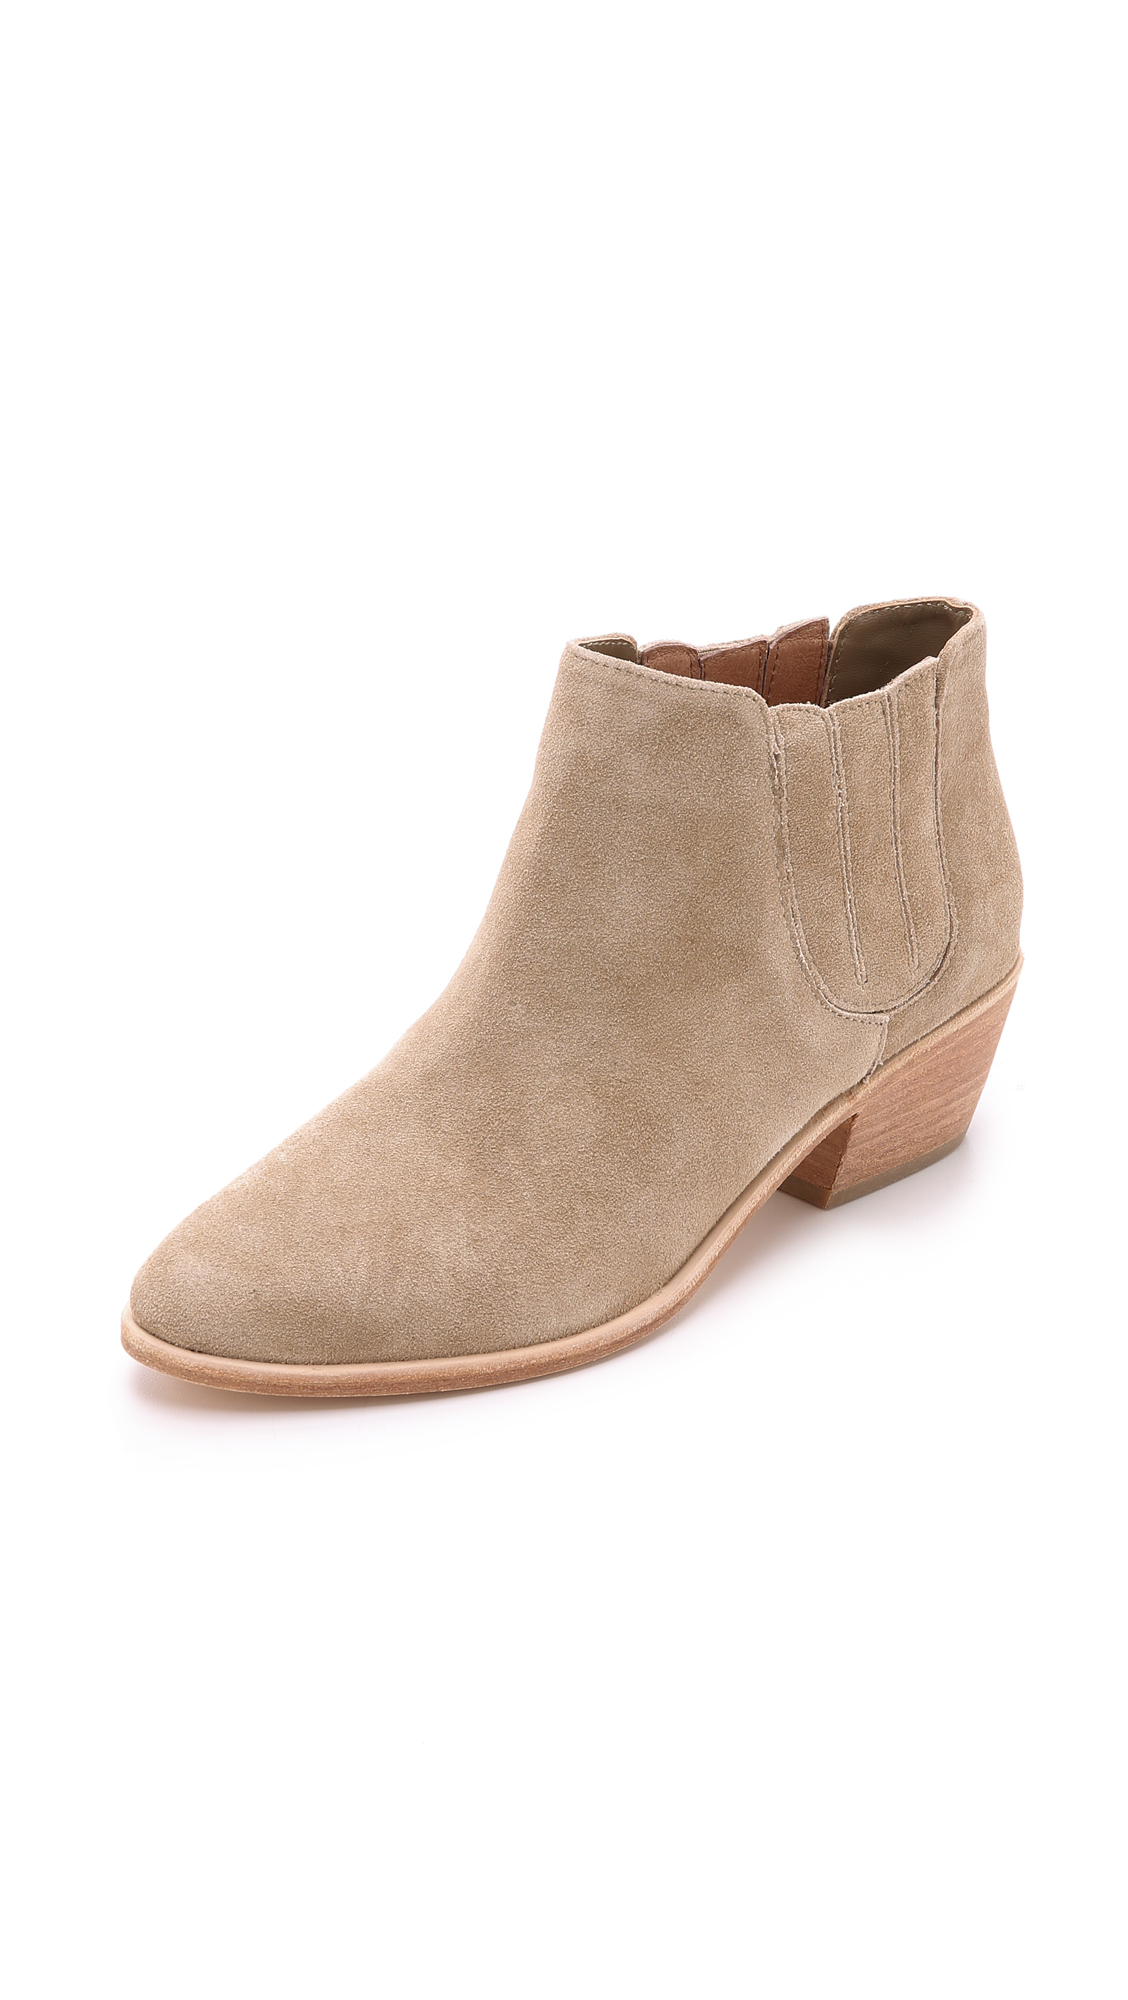 Joie Barlow Suede Pointed-Toe Bootie, Cement